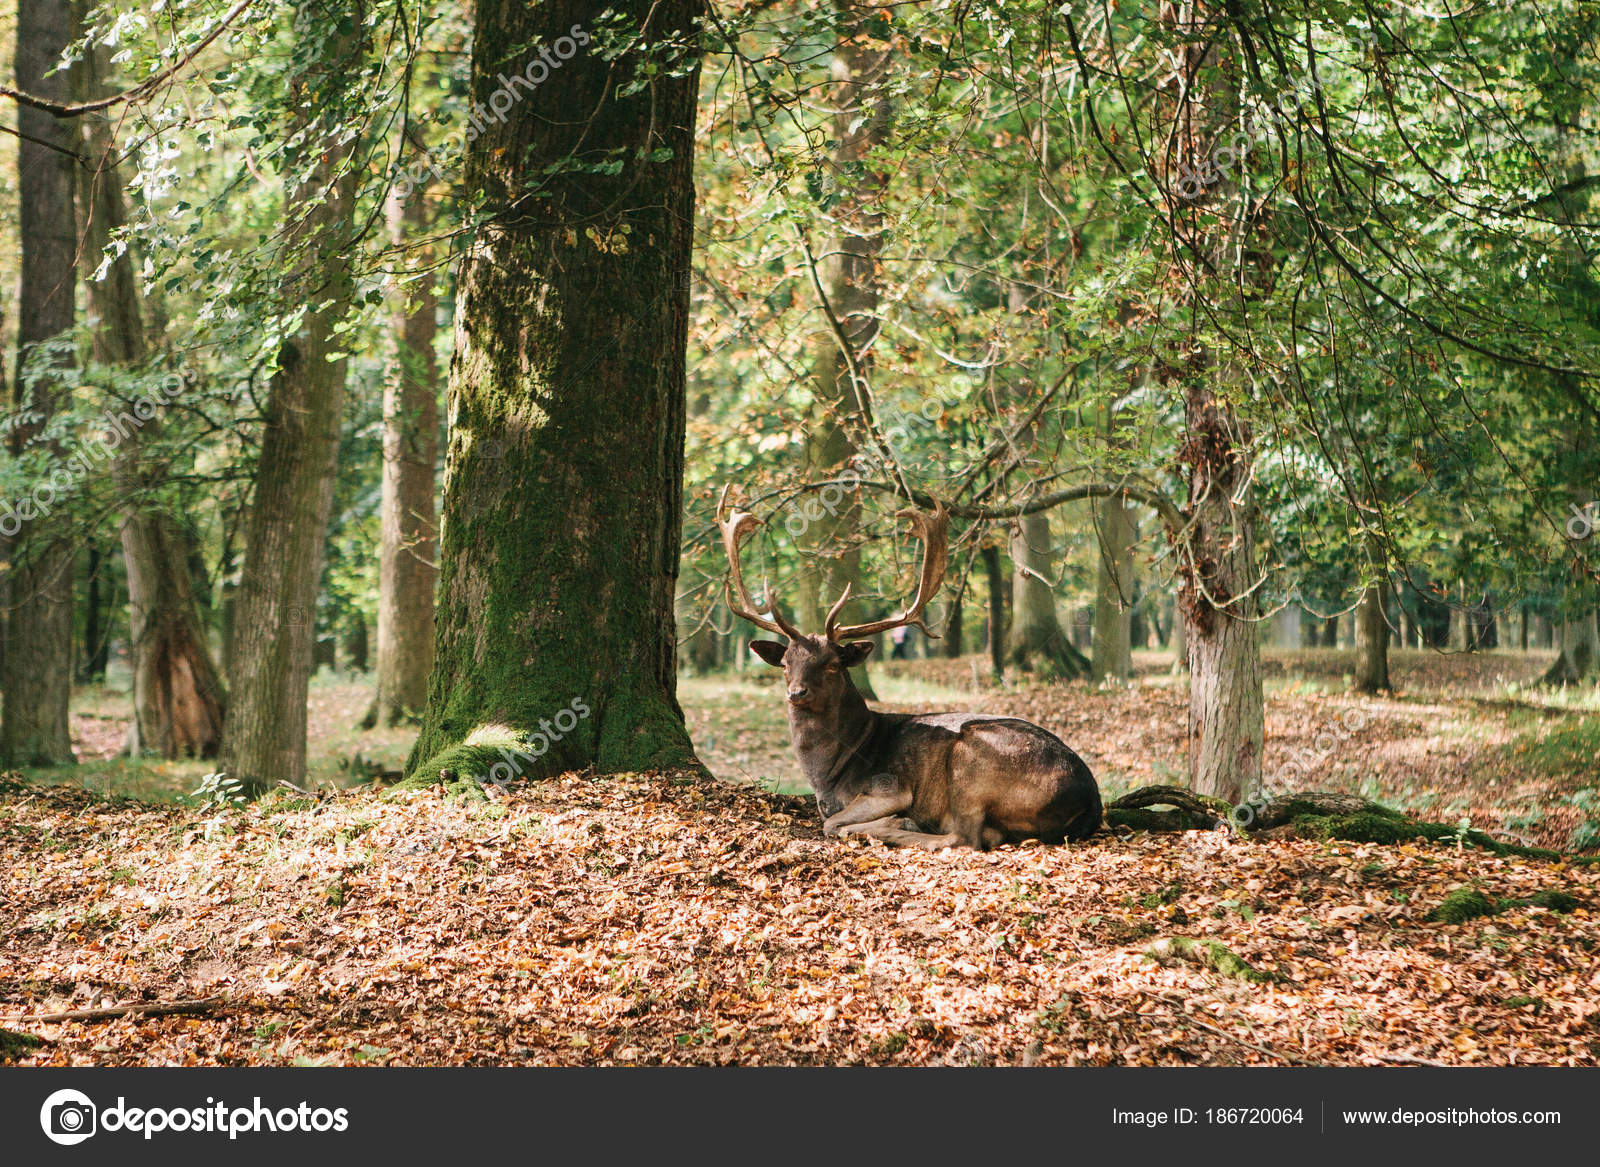 Wild Deer In The Forest Animal In A Natural Habitat